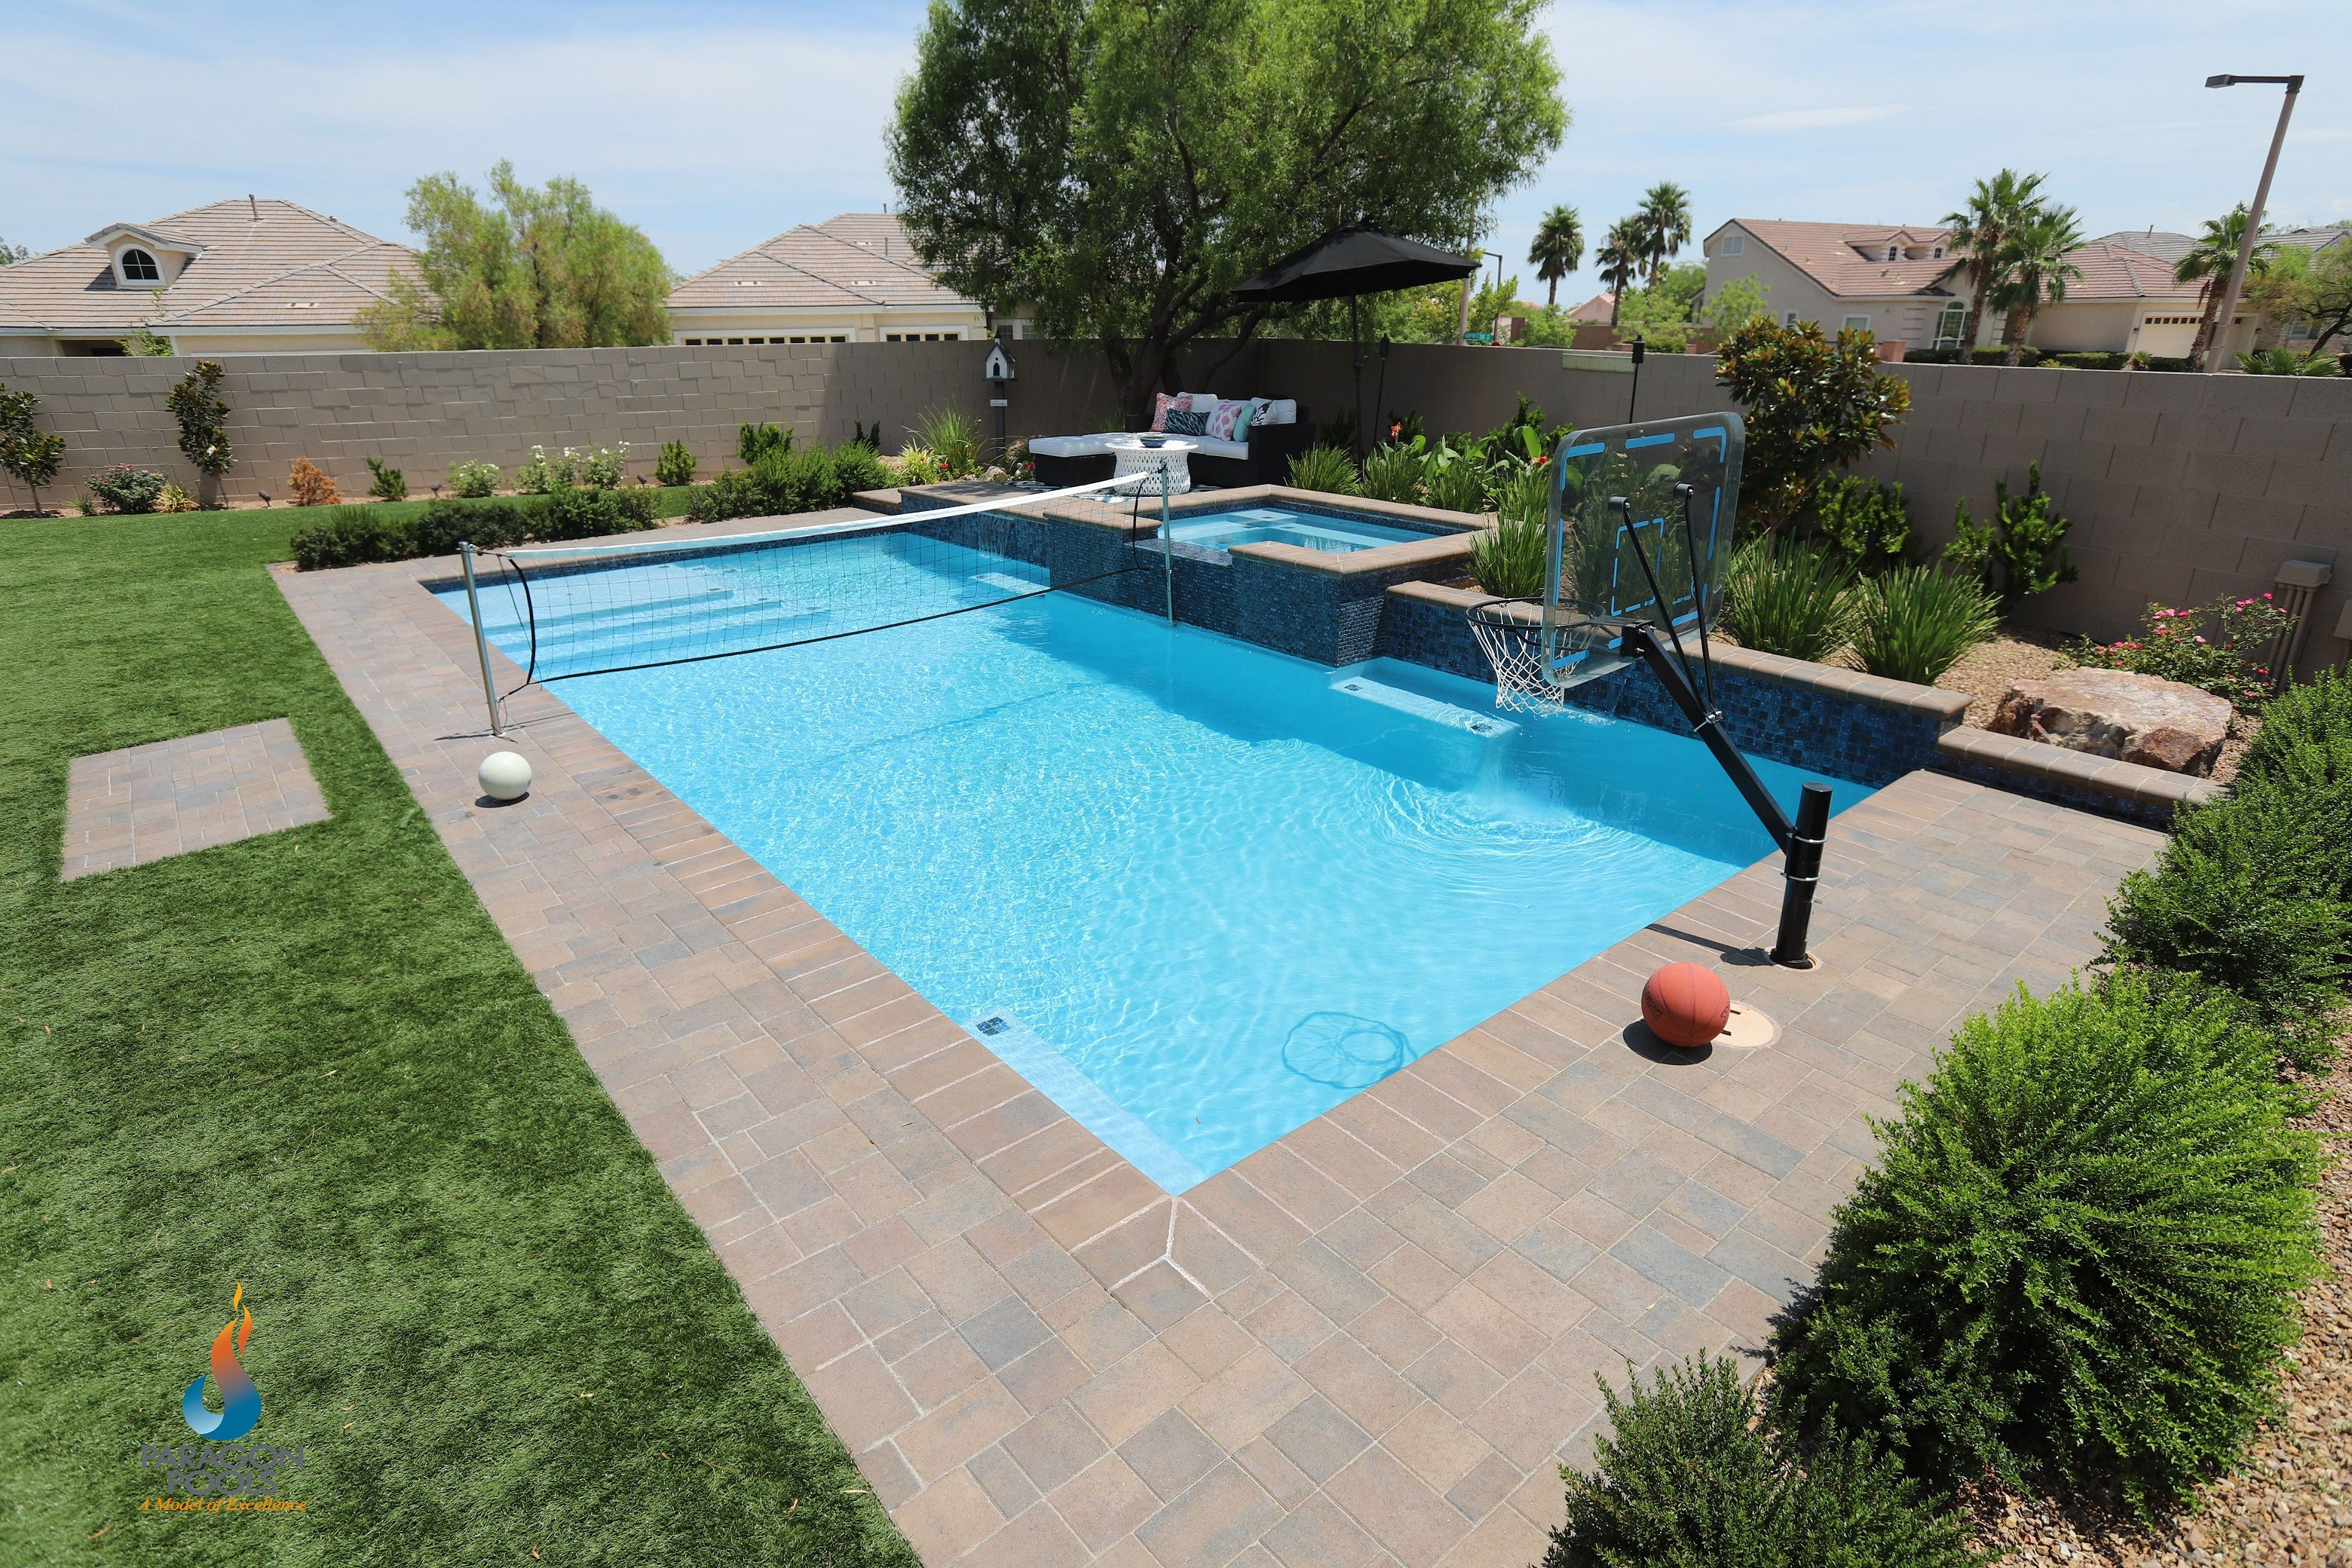 Sport Pool Pools Backyard Inground Sport Pool Lap Pools Backyard